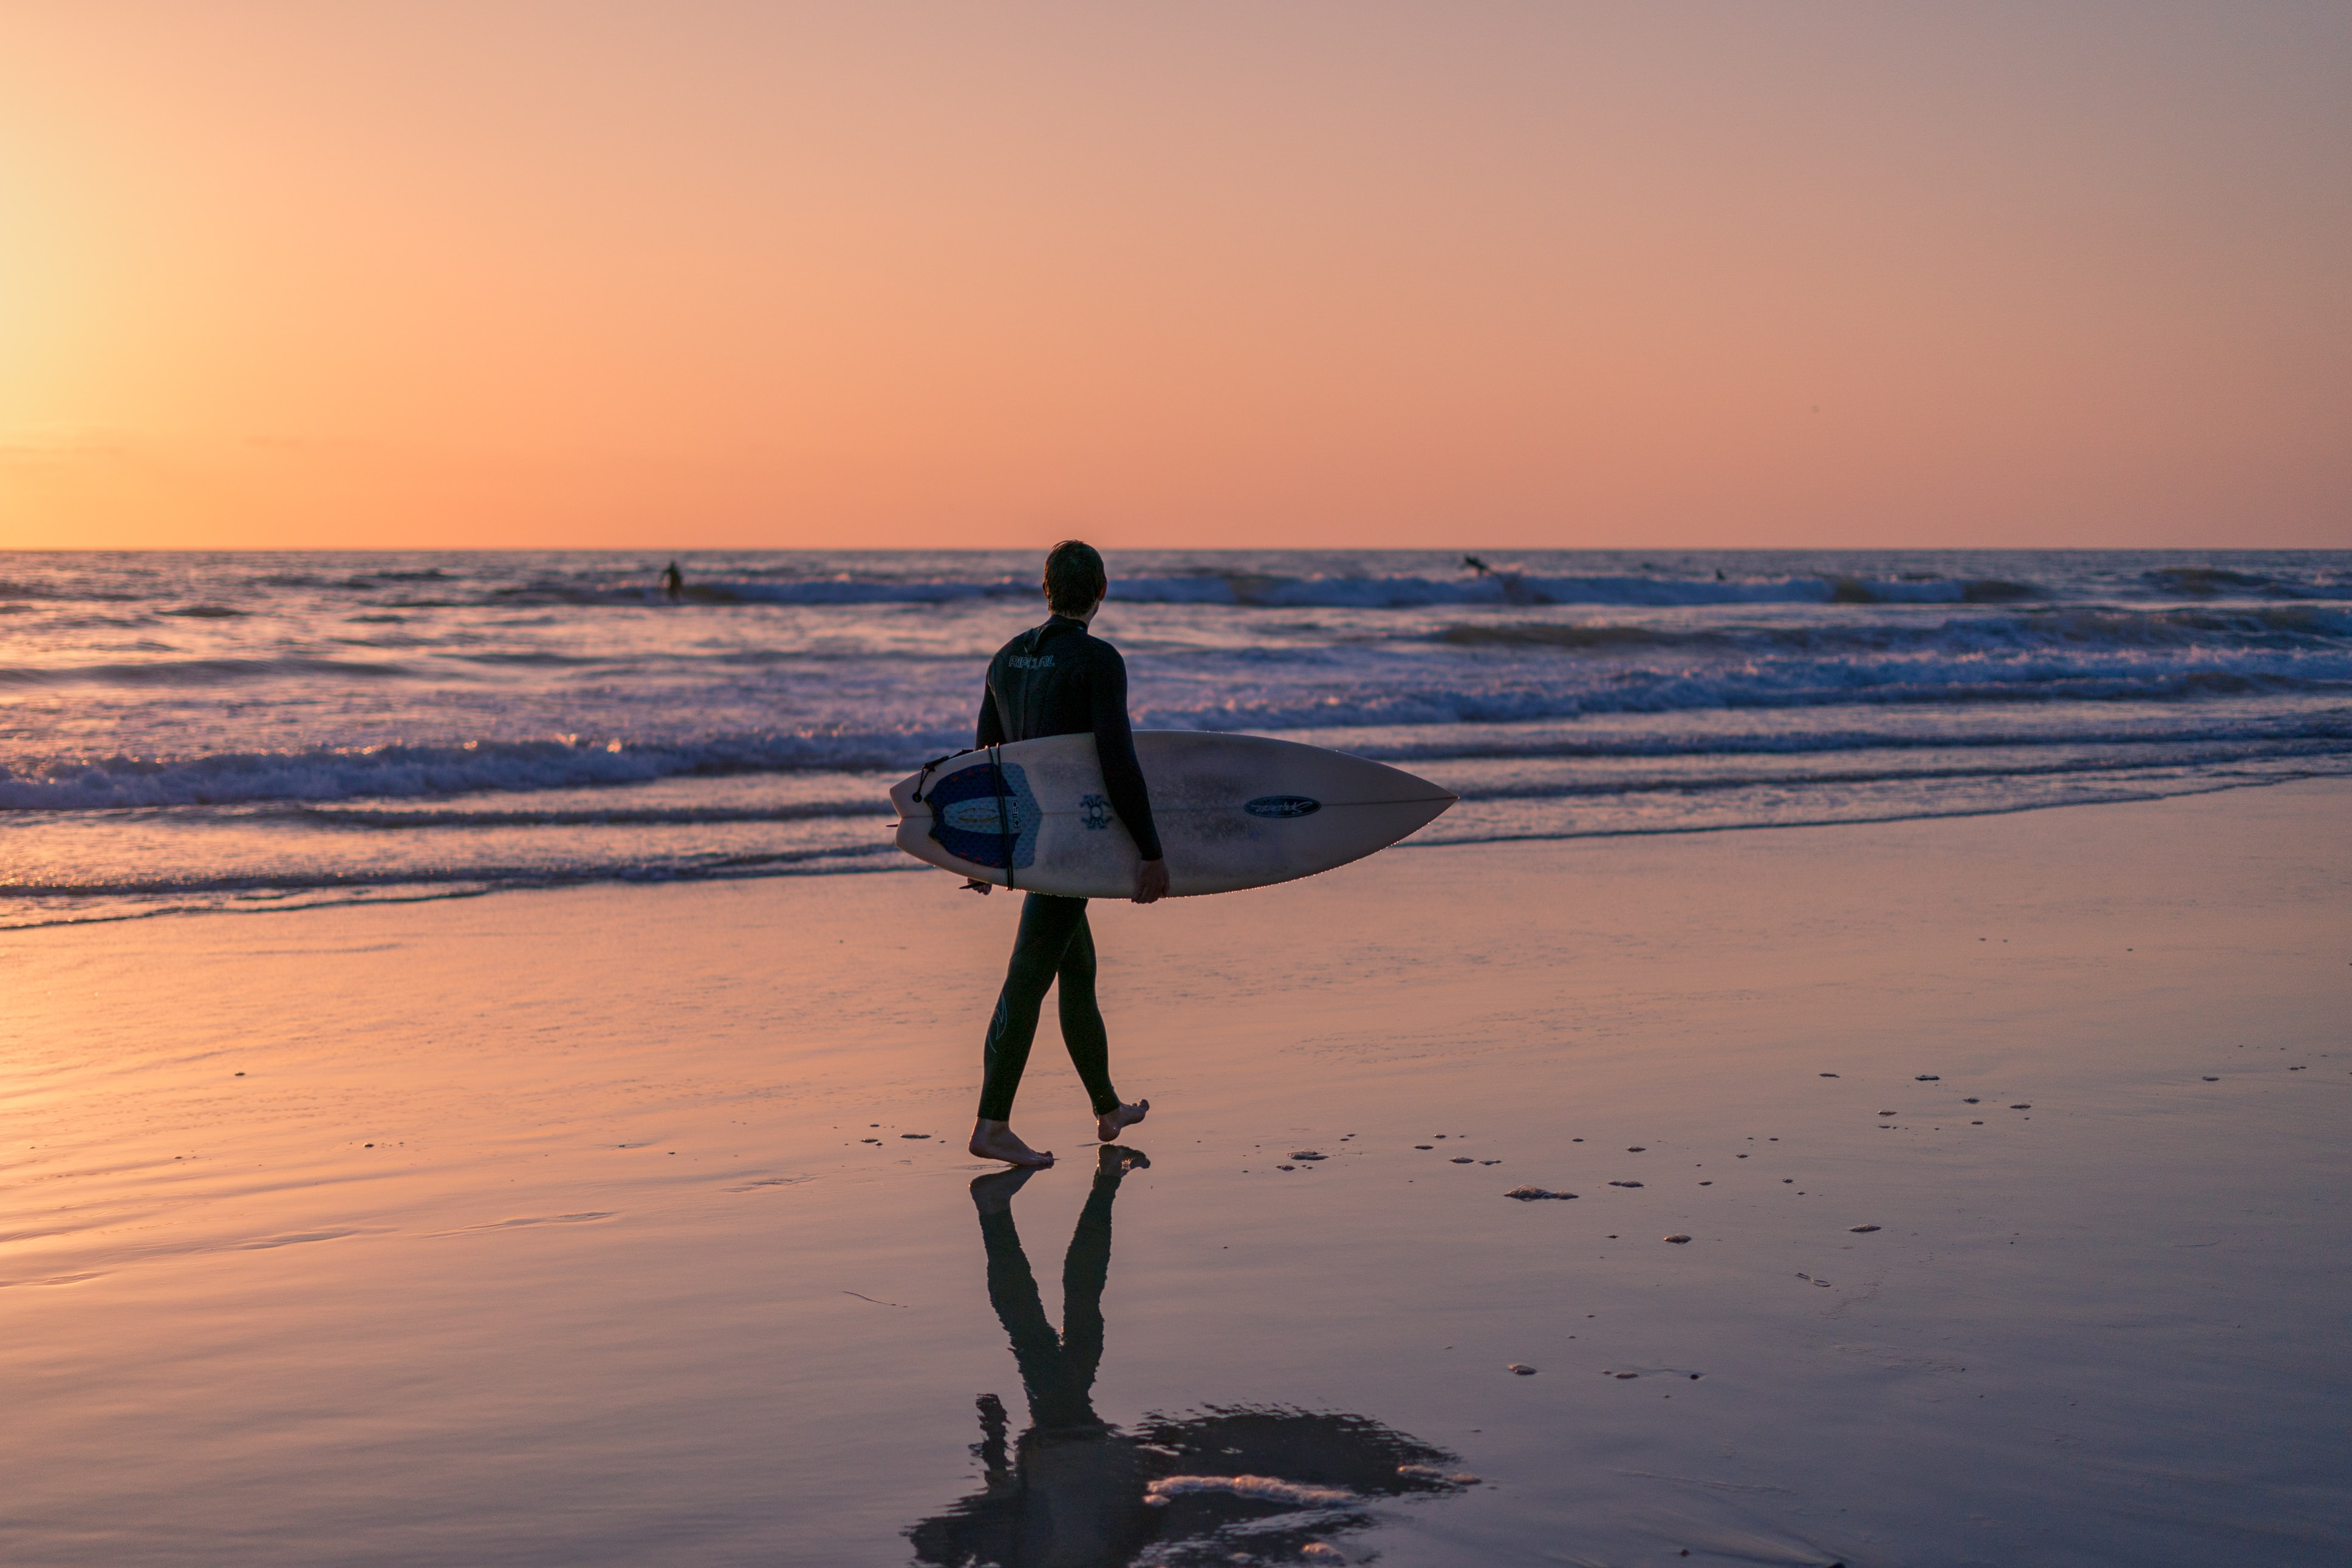 photo of man holding surfboard on seashore